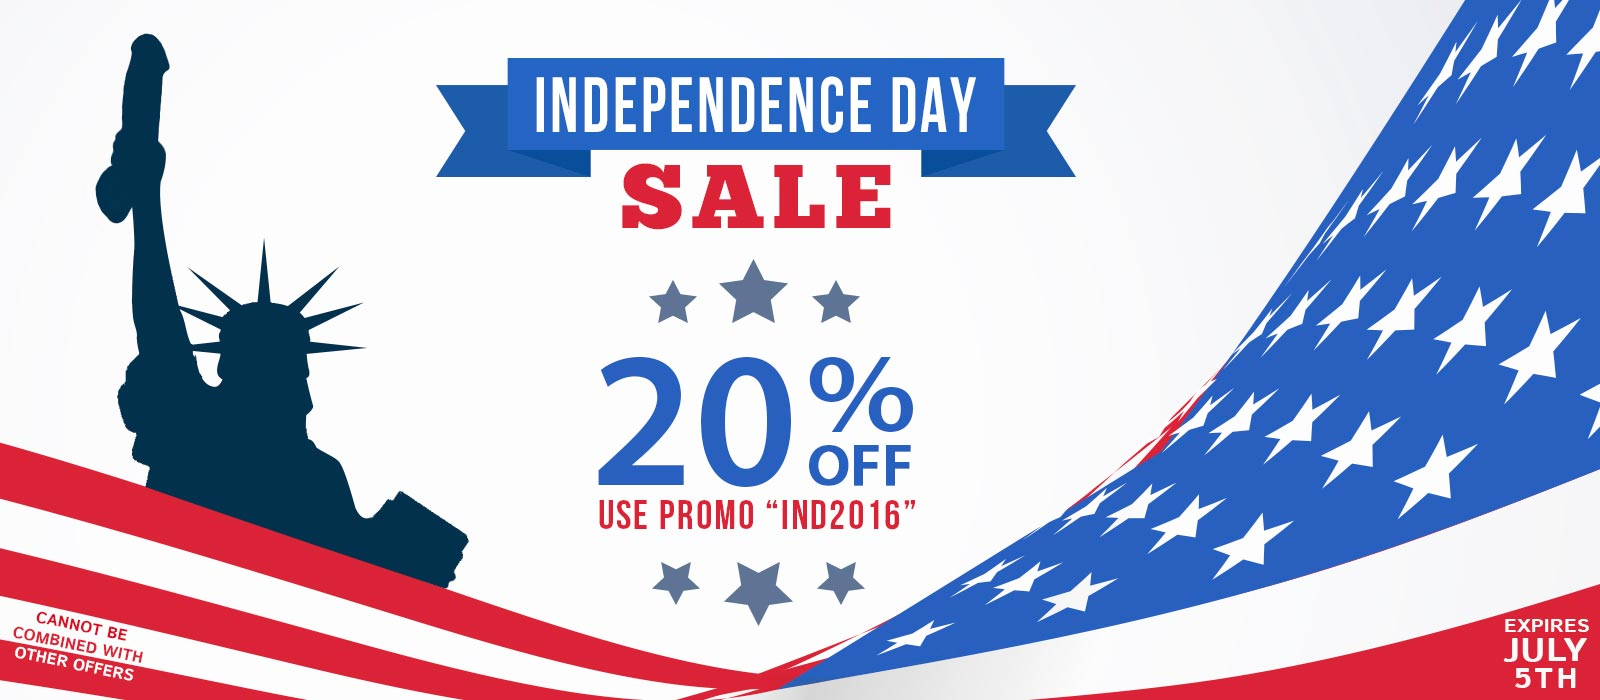 Bondage Fetish Independence day sale